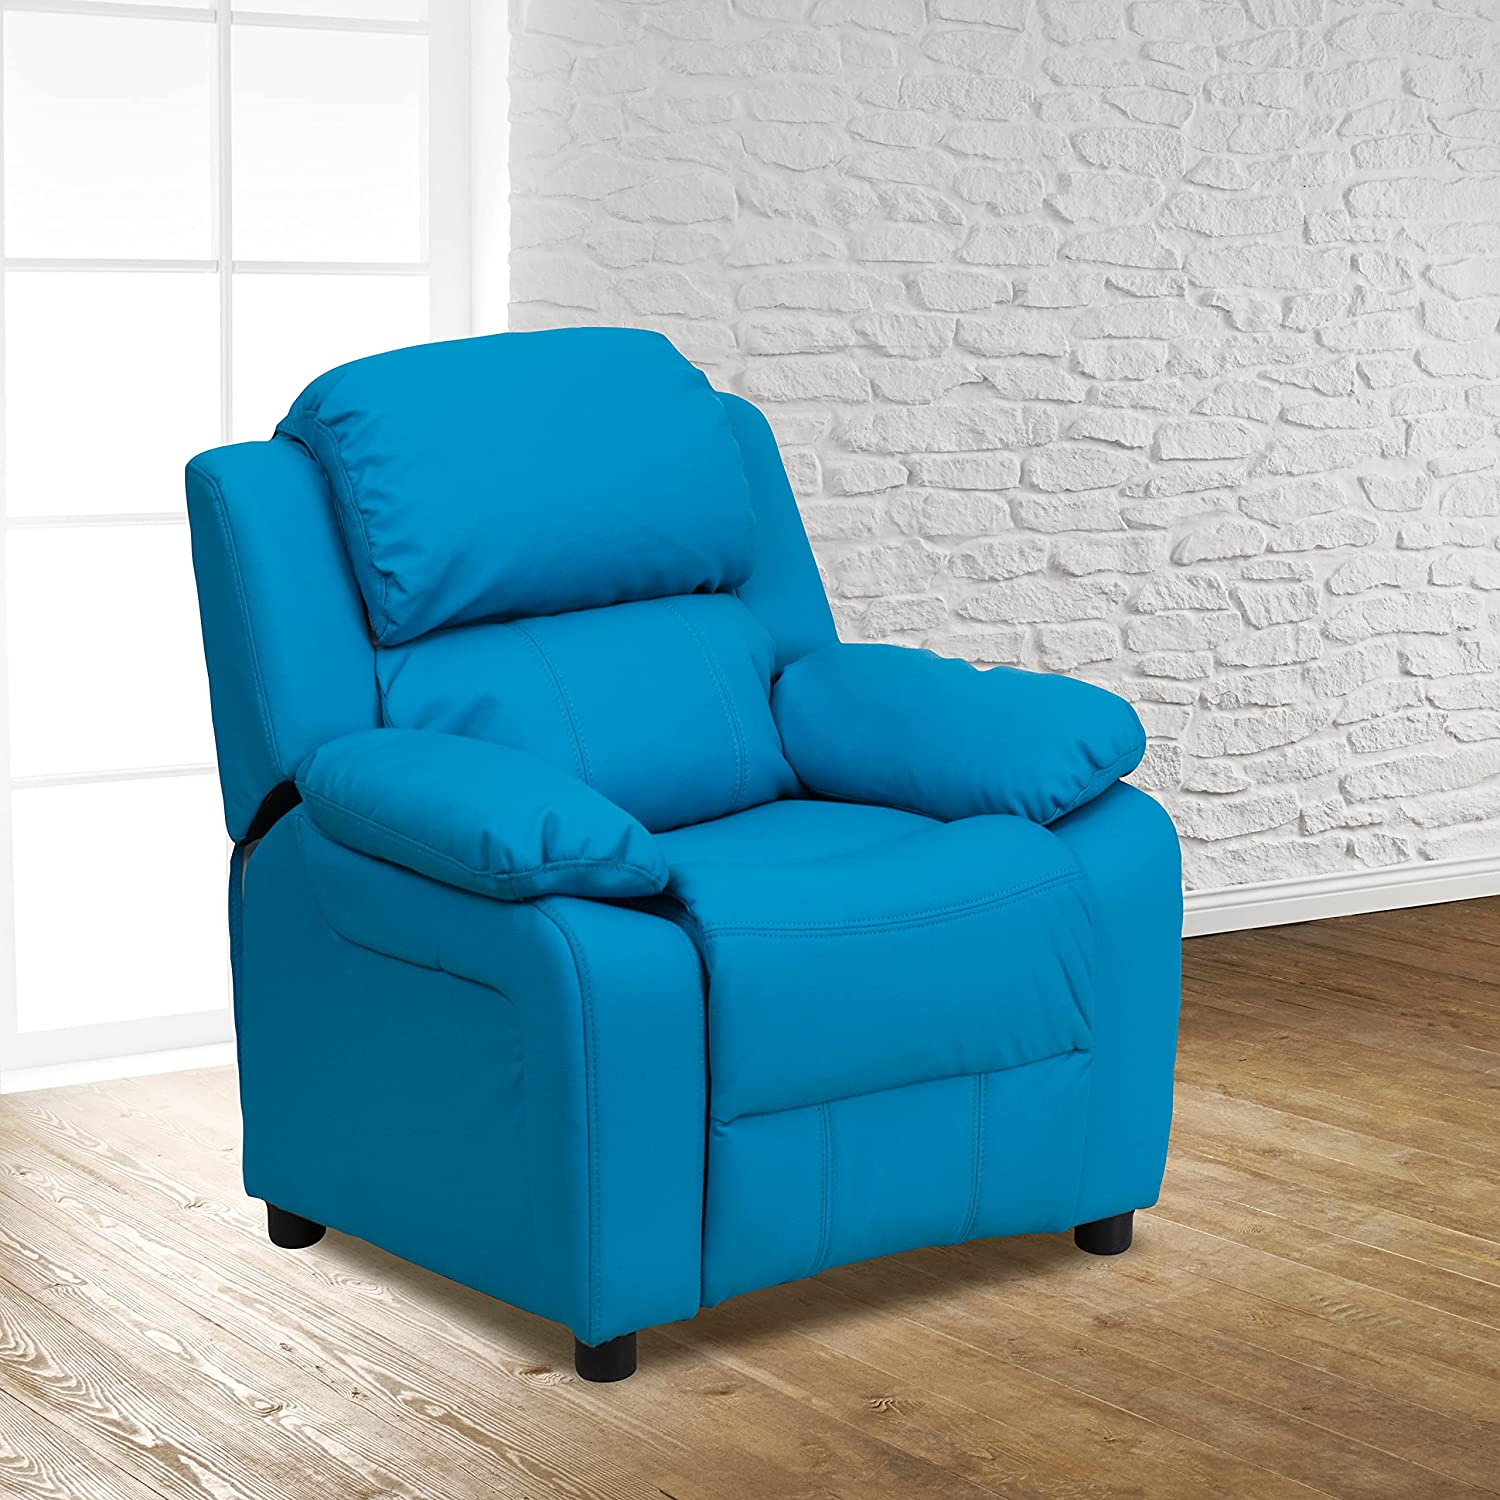 EMMA + OLIVER Deluxe Padded Turquoise Recliner Superior Cheap sale with S Vinyl Kids